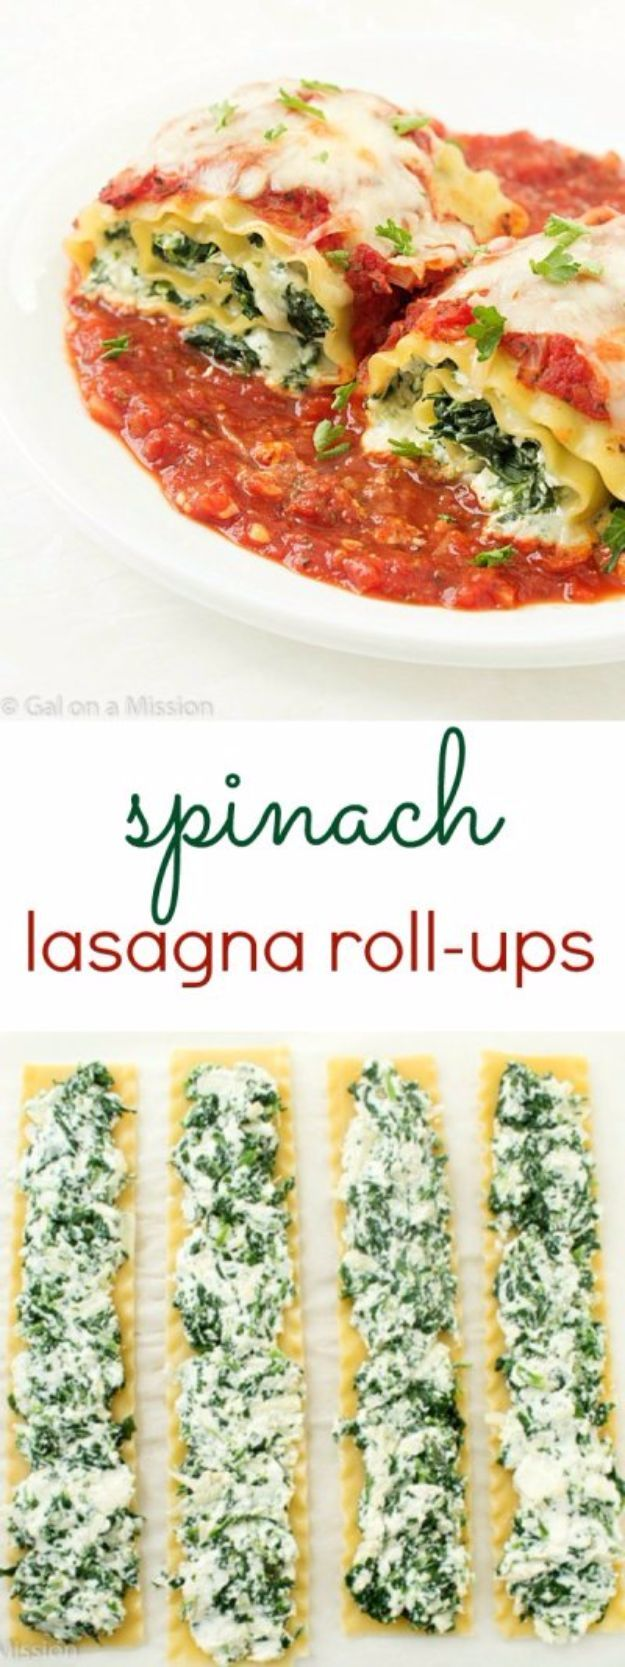 Best Spinach Recipes - Spinach Lasagna Roll-Ups - Easy, Healthy Lowfat Recipe Ideas for Dinner, Salads, Lunches, Sides, Smoothies and Even Dessert - Qucik and Creative Ideas for Vegetables - Cheesy, Creamed, Country Style Favorites for Family and For Kids http://diyjoy.com/best-spinach-recipes